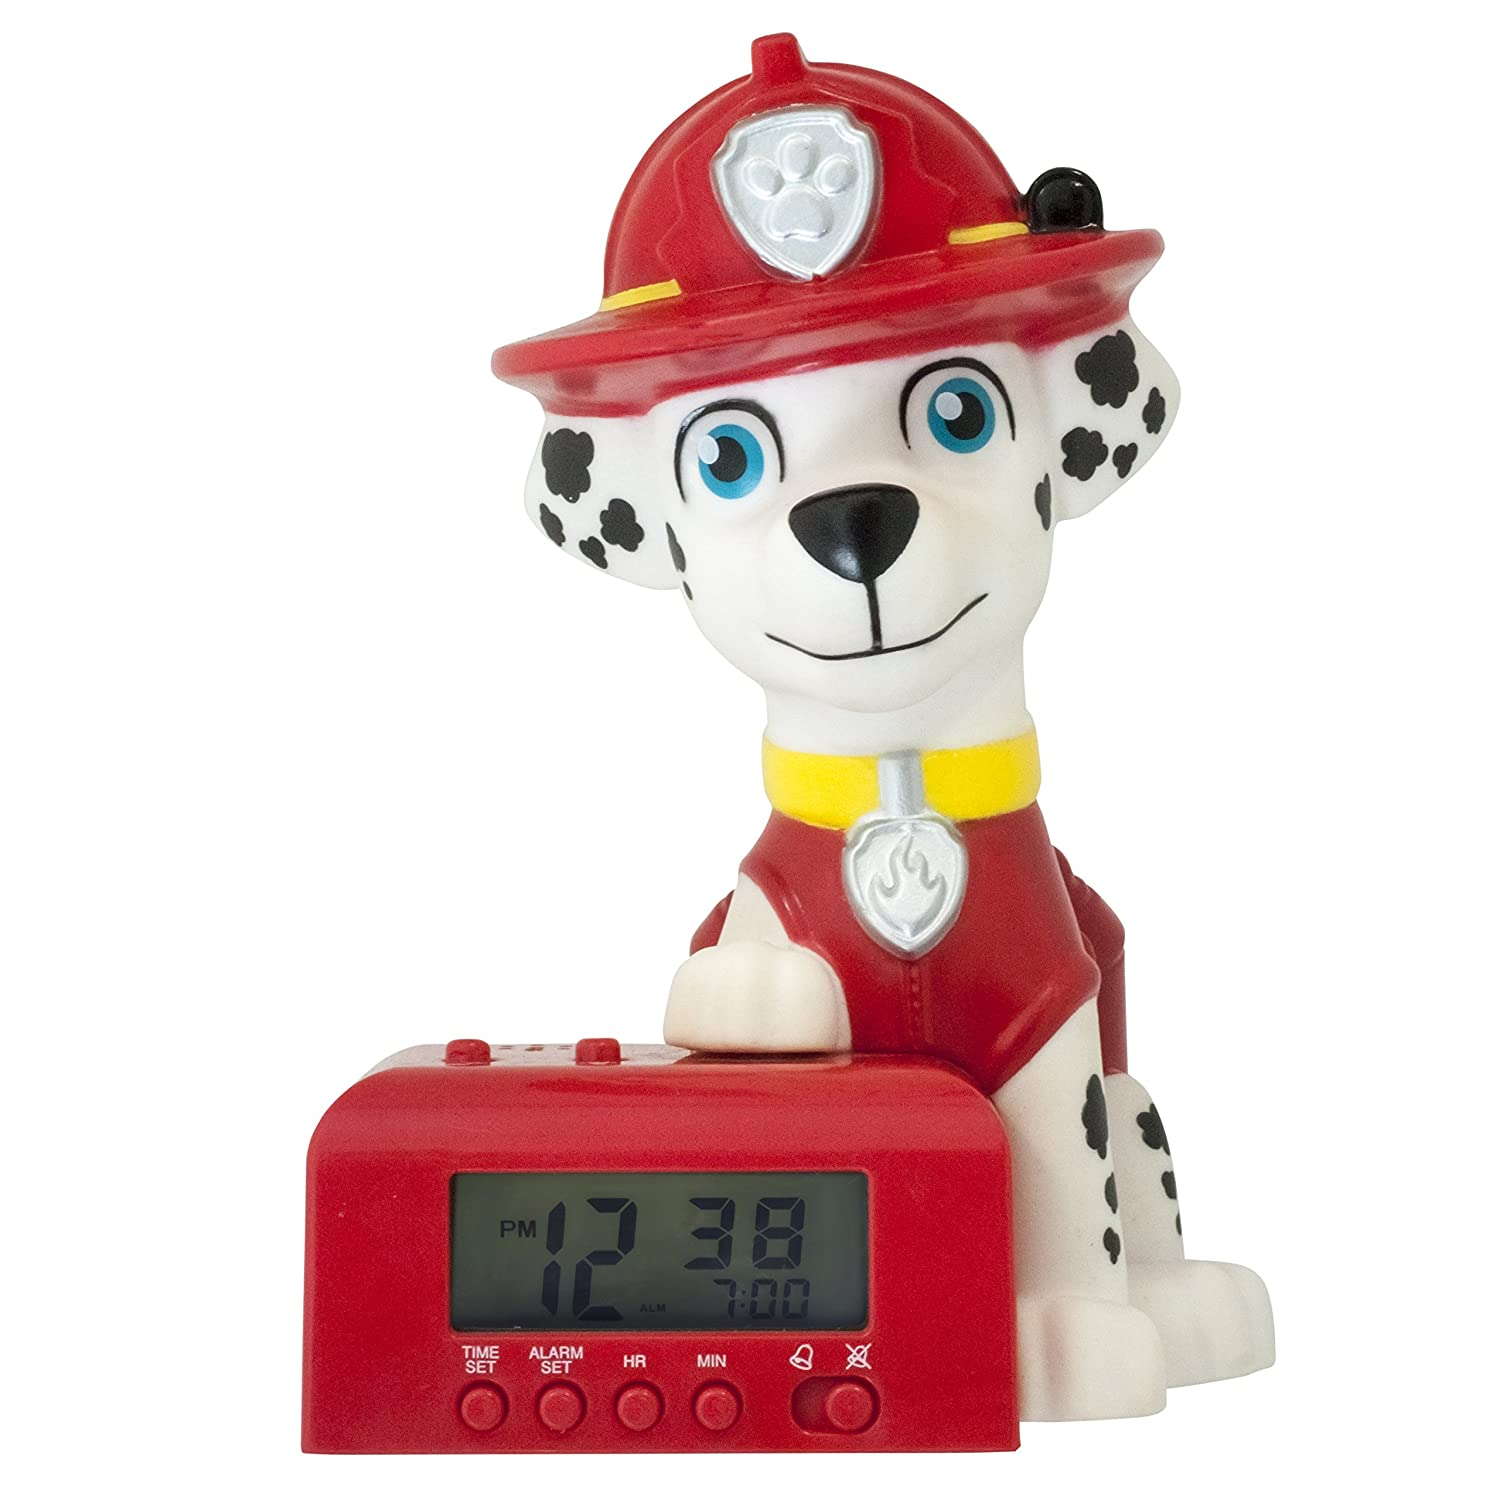 BulbBotz Paw Patrol 2021319 Marshall Kids Night Light Alarm Clock with Characterised Sound, 5.5 inches Tall, Red/White